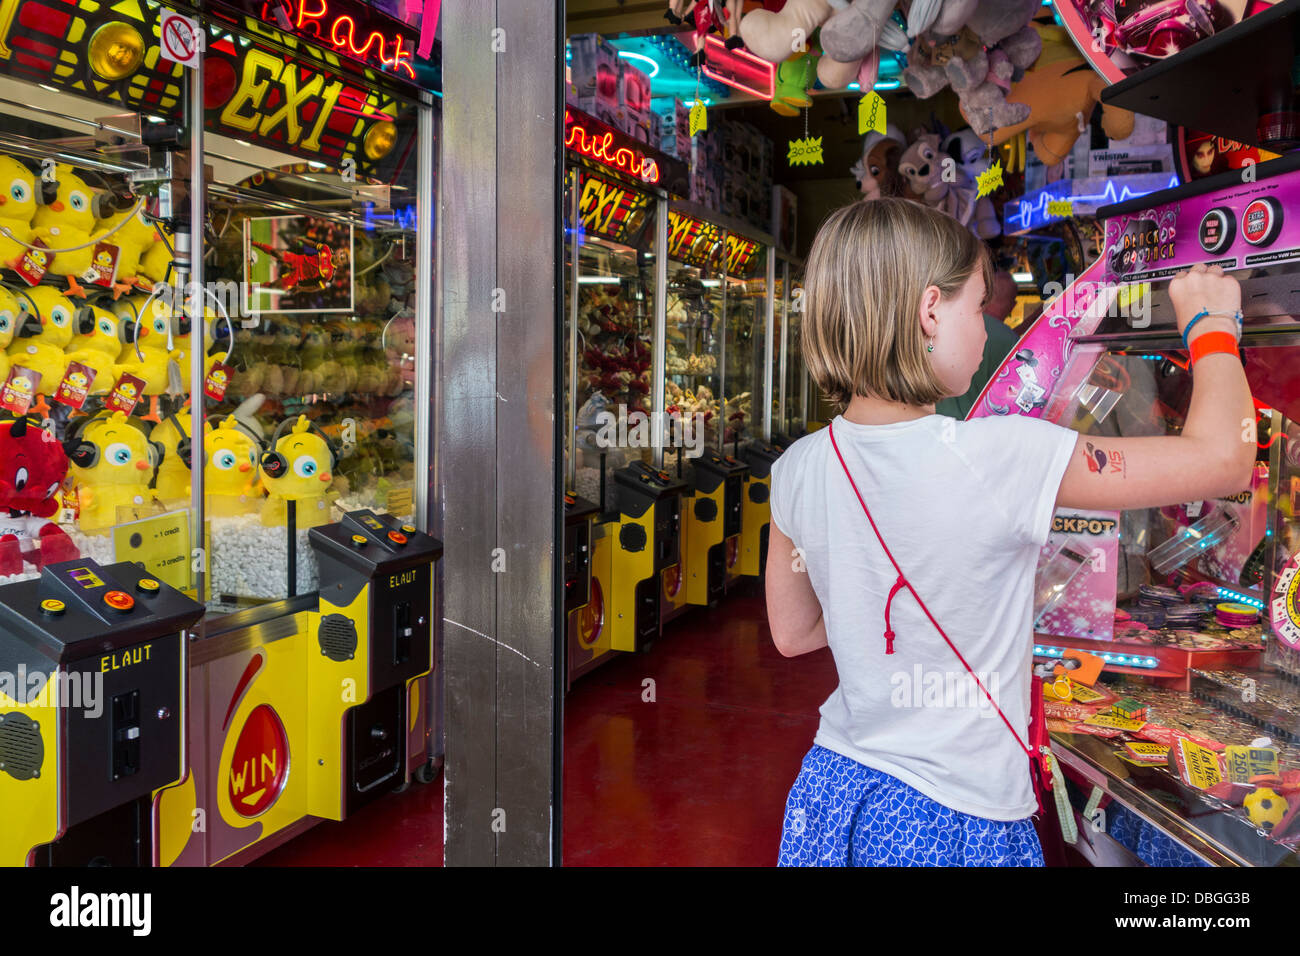 Arcade with claw crane game machines and child playing with coin pusher / push medal game at travelling funfair - Stock Image